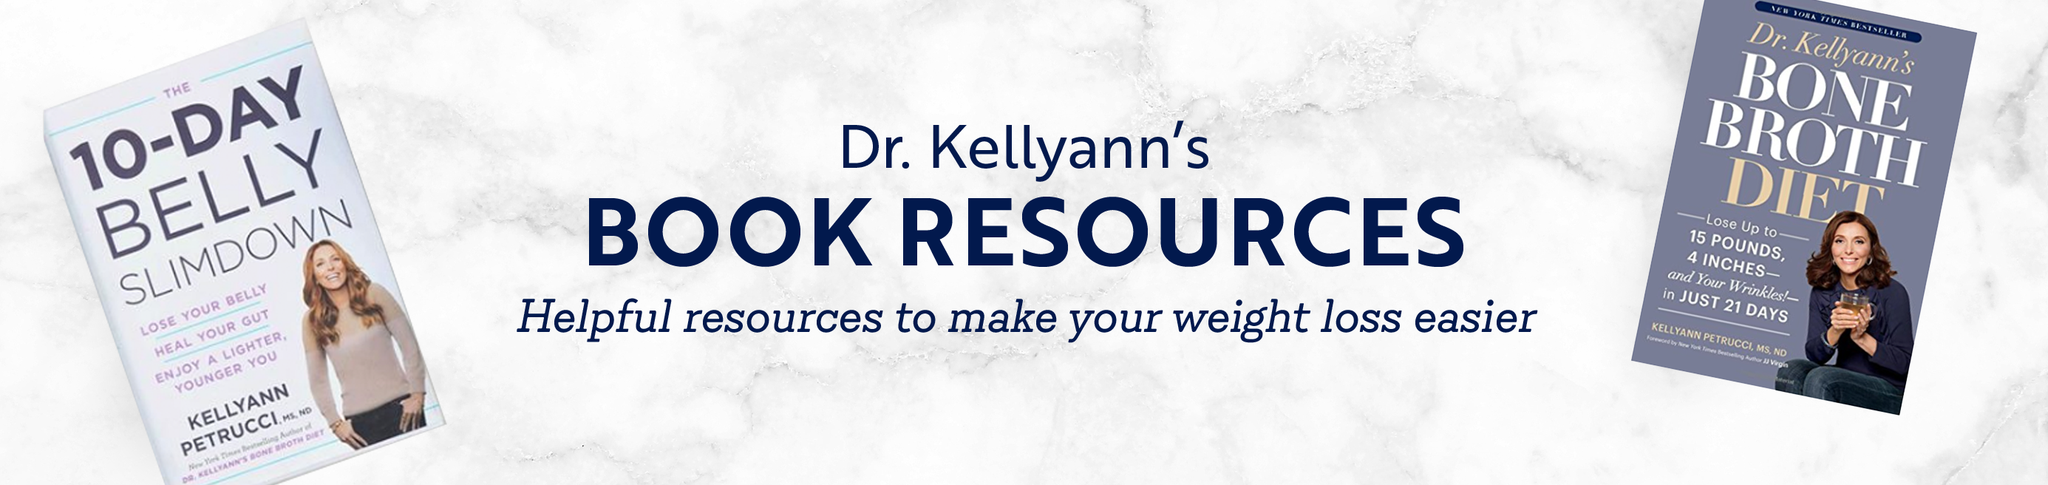 Dr. Kellyann's 10-Day Belly Slimdown book and Bone Broth Diet book